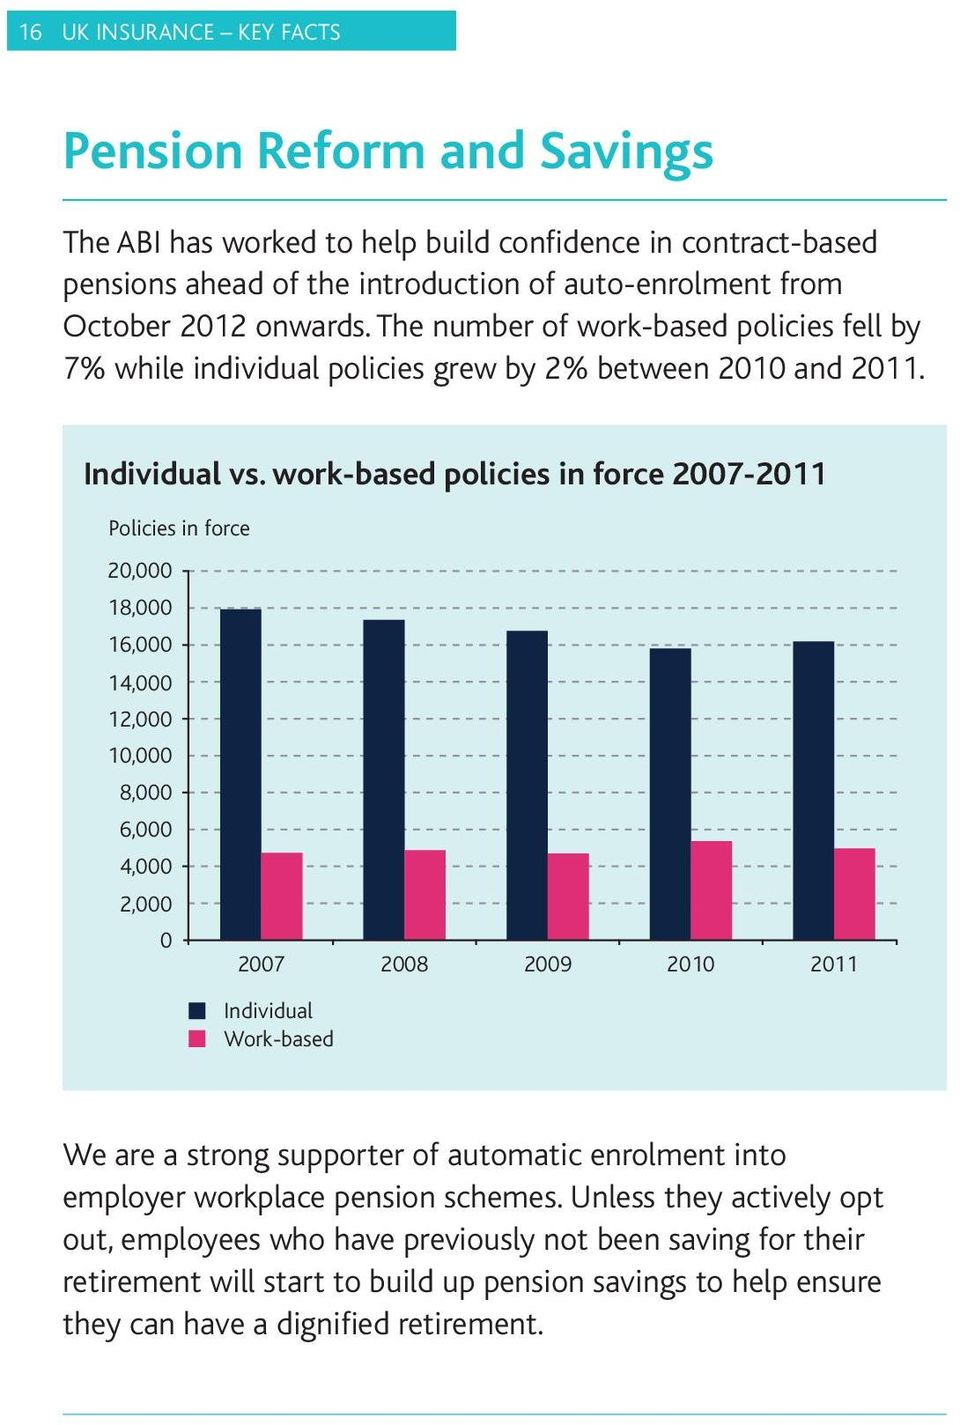 work-based policies in force 2007-2011 Policies in force 20,000 18,000 16,000 14,000 12,000 10,000 8,000 6,000 4,000 2,000 0 2007 2008 2009 2010 2011 Individual Work-based We are a strong